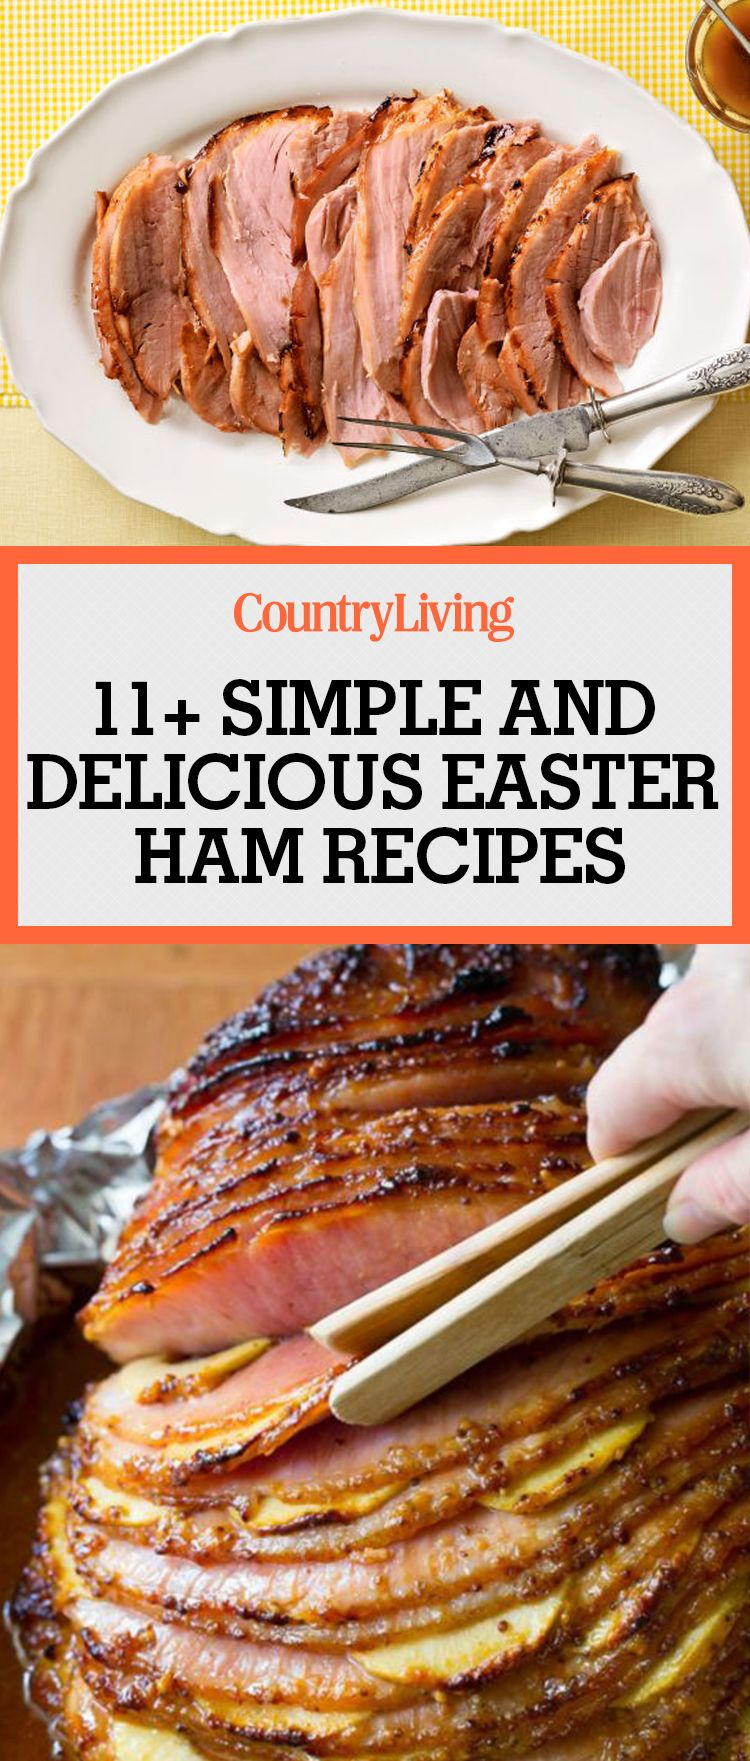 14 Easy And Delicious Ham Recipes For Easter Recipes Easter Ham